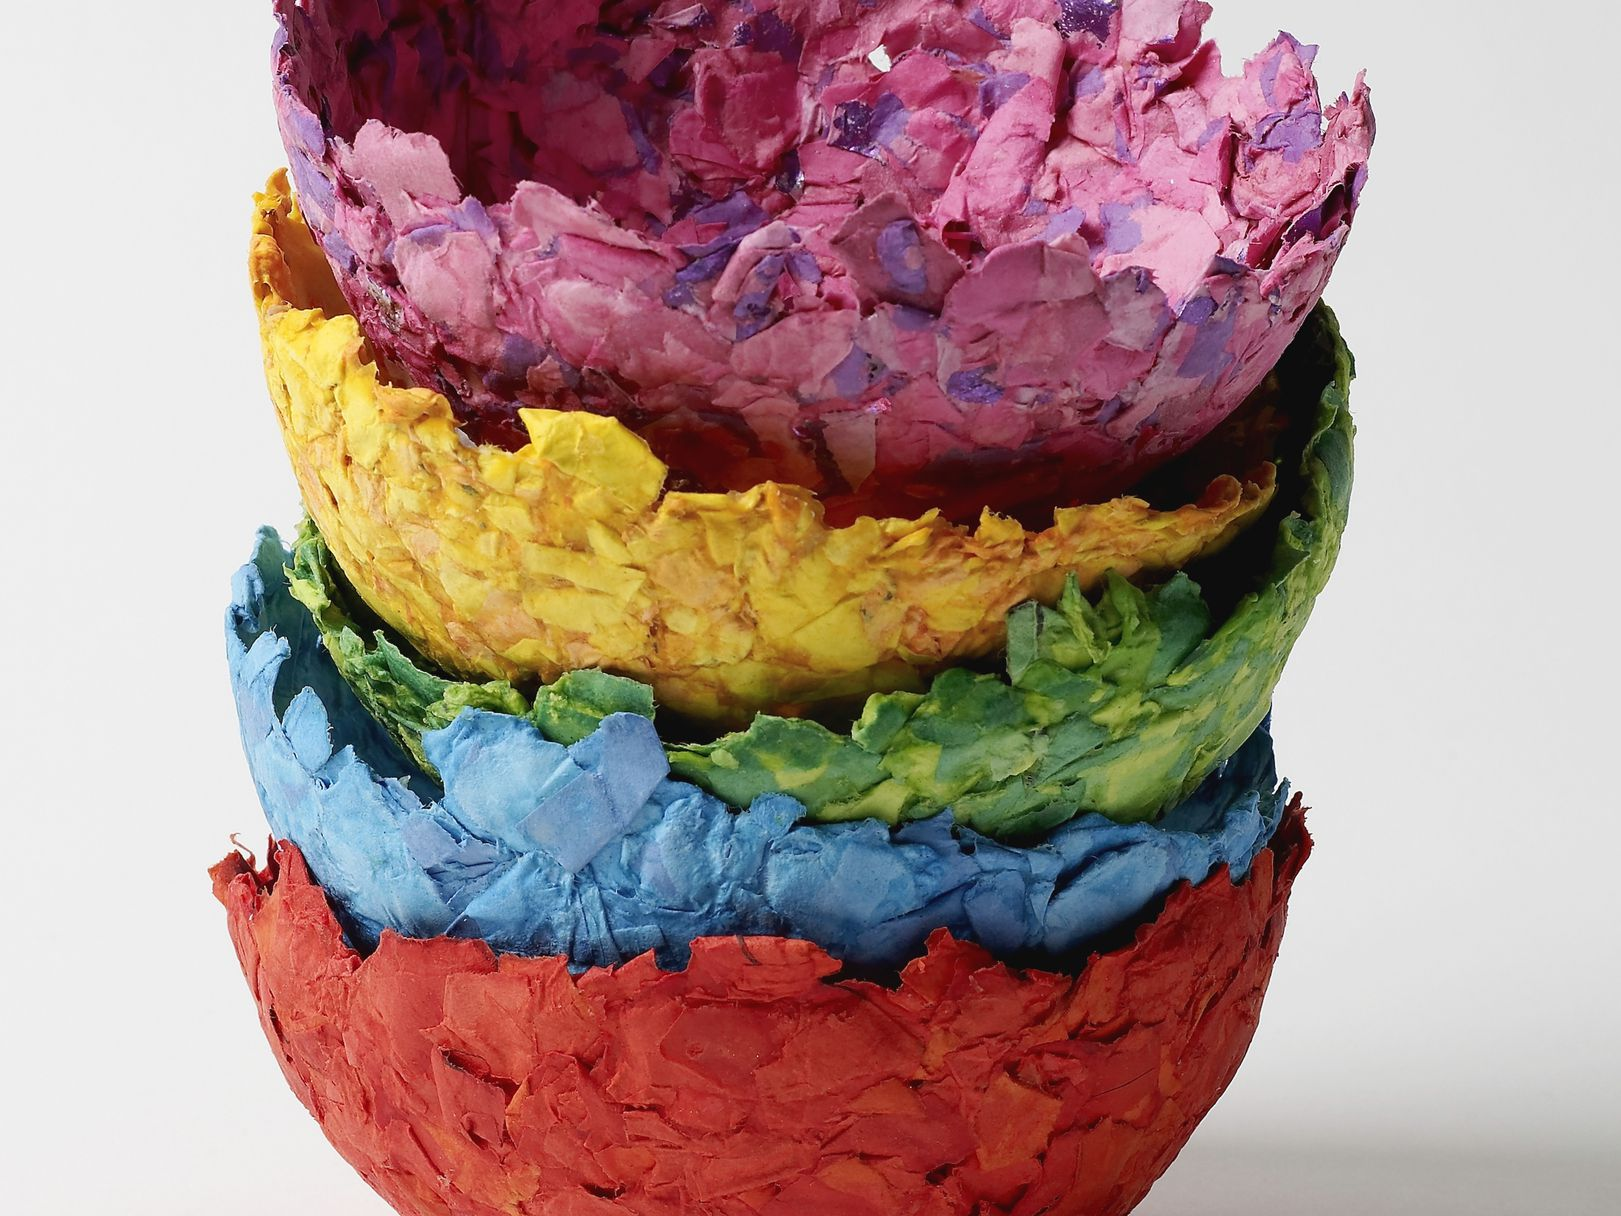 my little pony cake decorating ideas.htm step by step paper mache directions  step by step paper mache directions